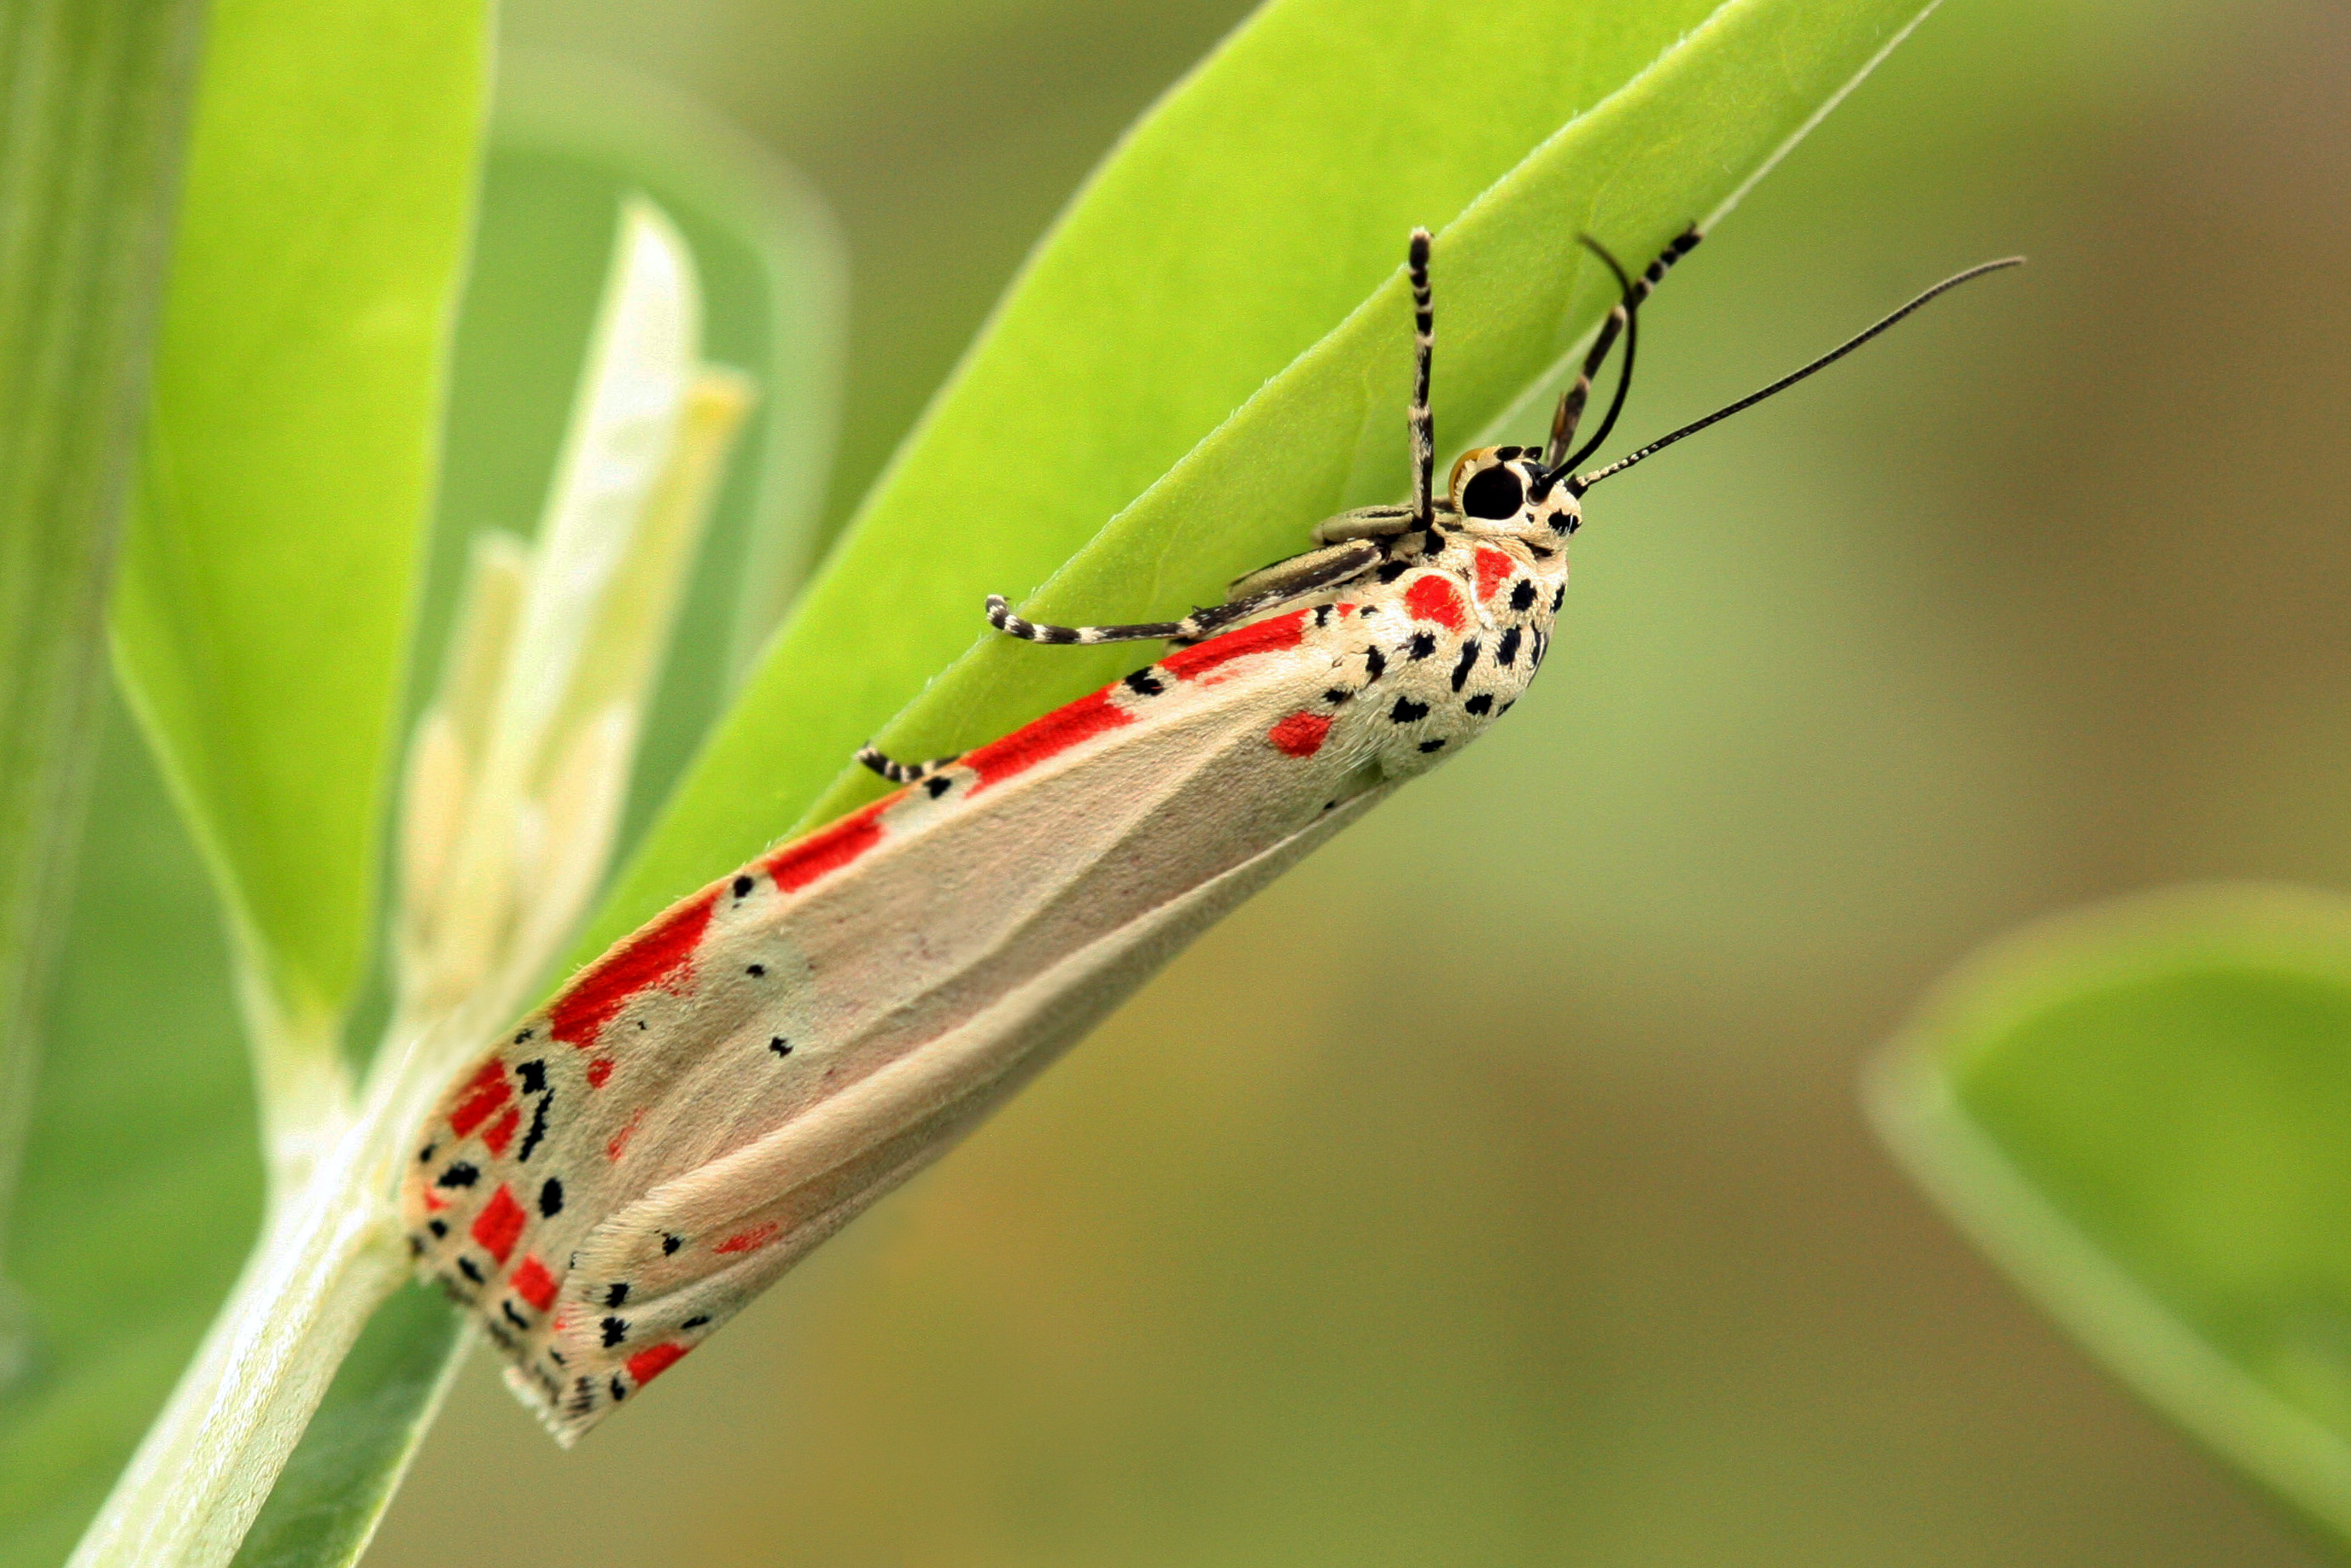 Utetheisa ornatrix - Wikipedia